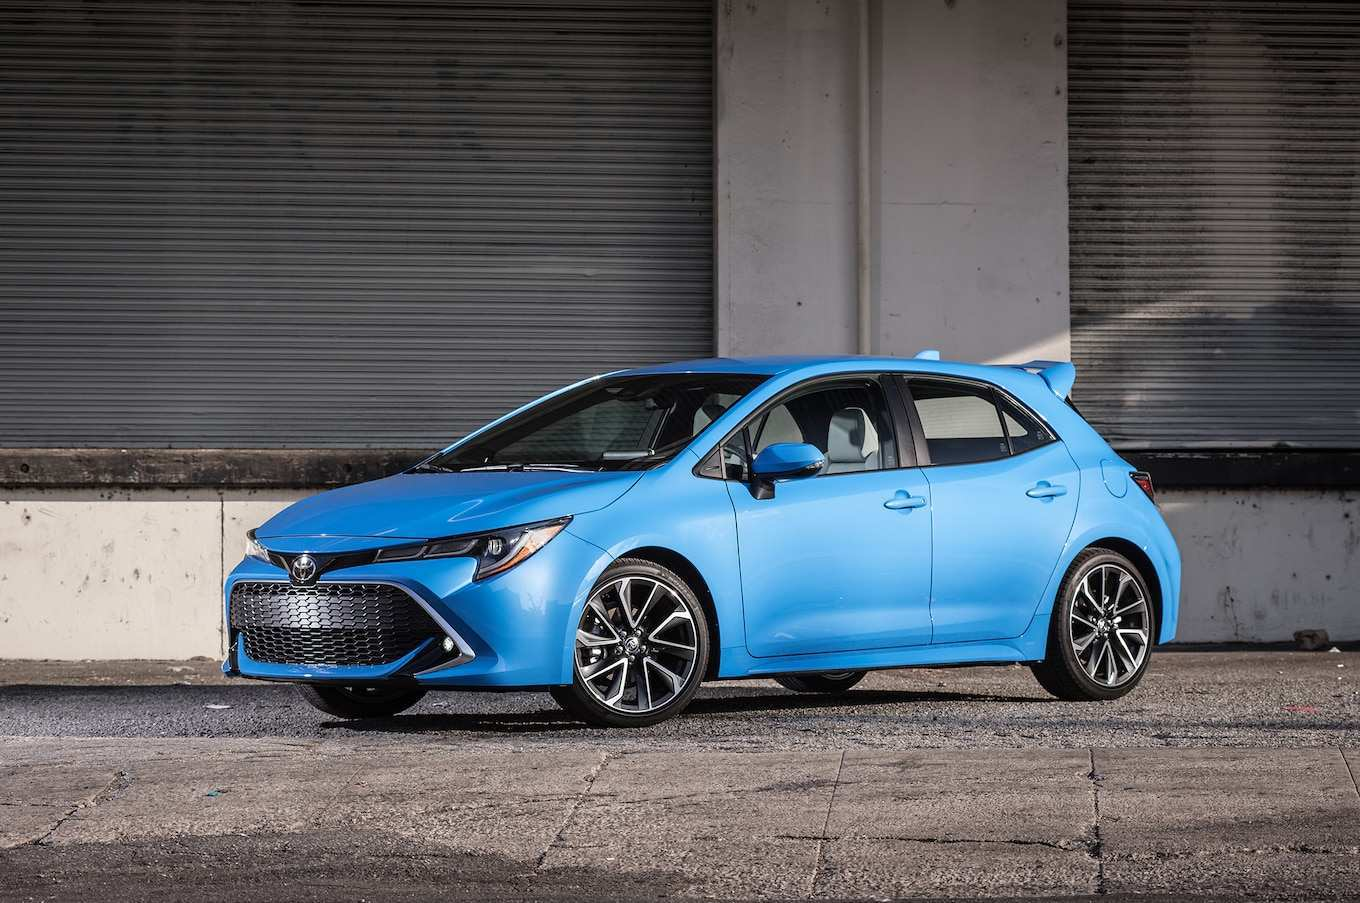 99 All New New 2019 Corolla Hatchback Vs Mazda 3 Specs Wallpaper with New 2019 Corolla Hatchback Vs Mazda 3 Specs